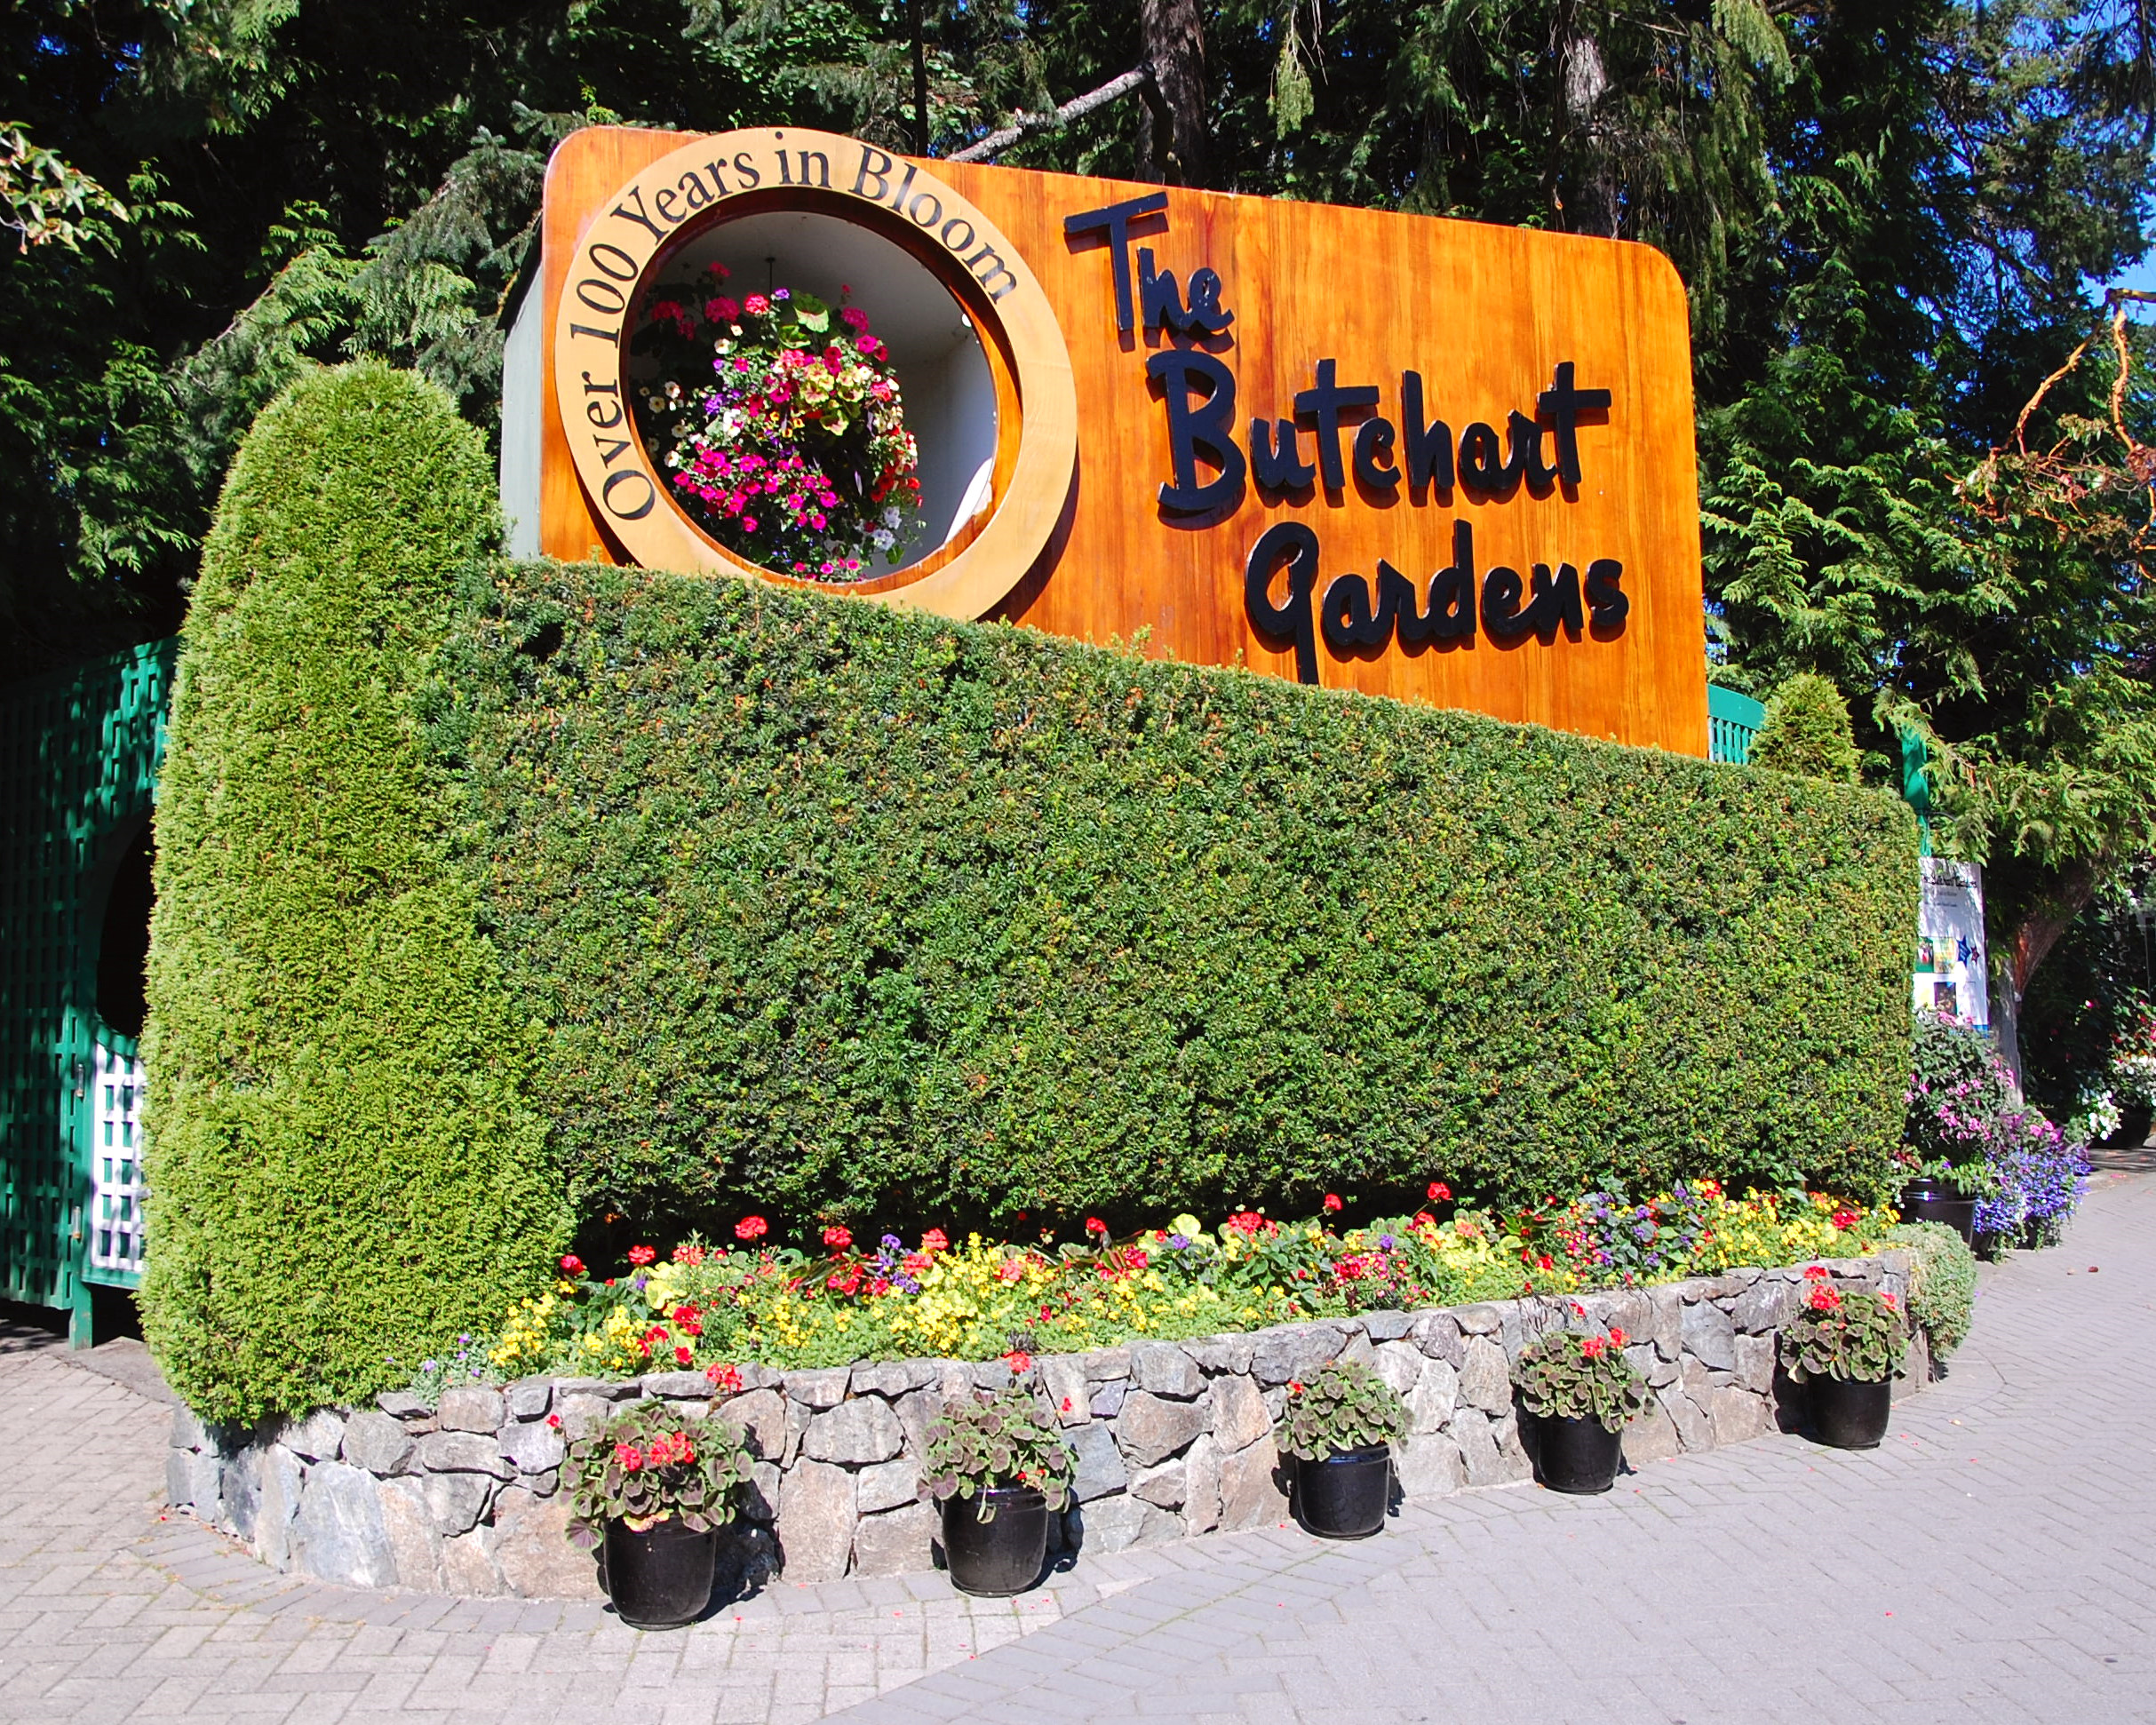 Entrance to the Butchart Gardens